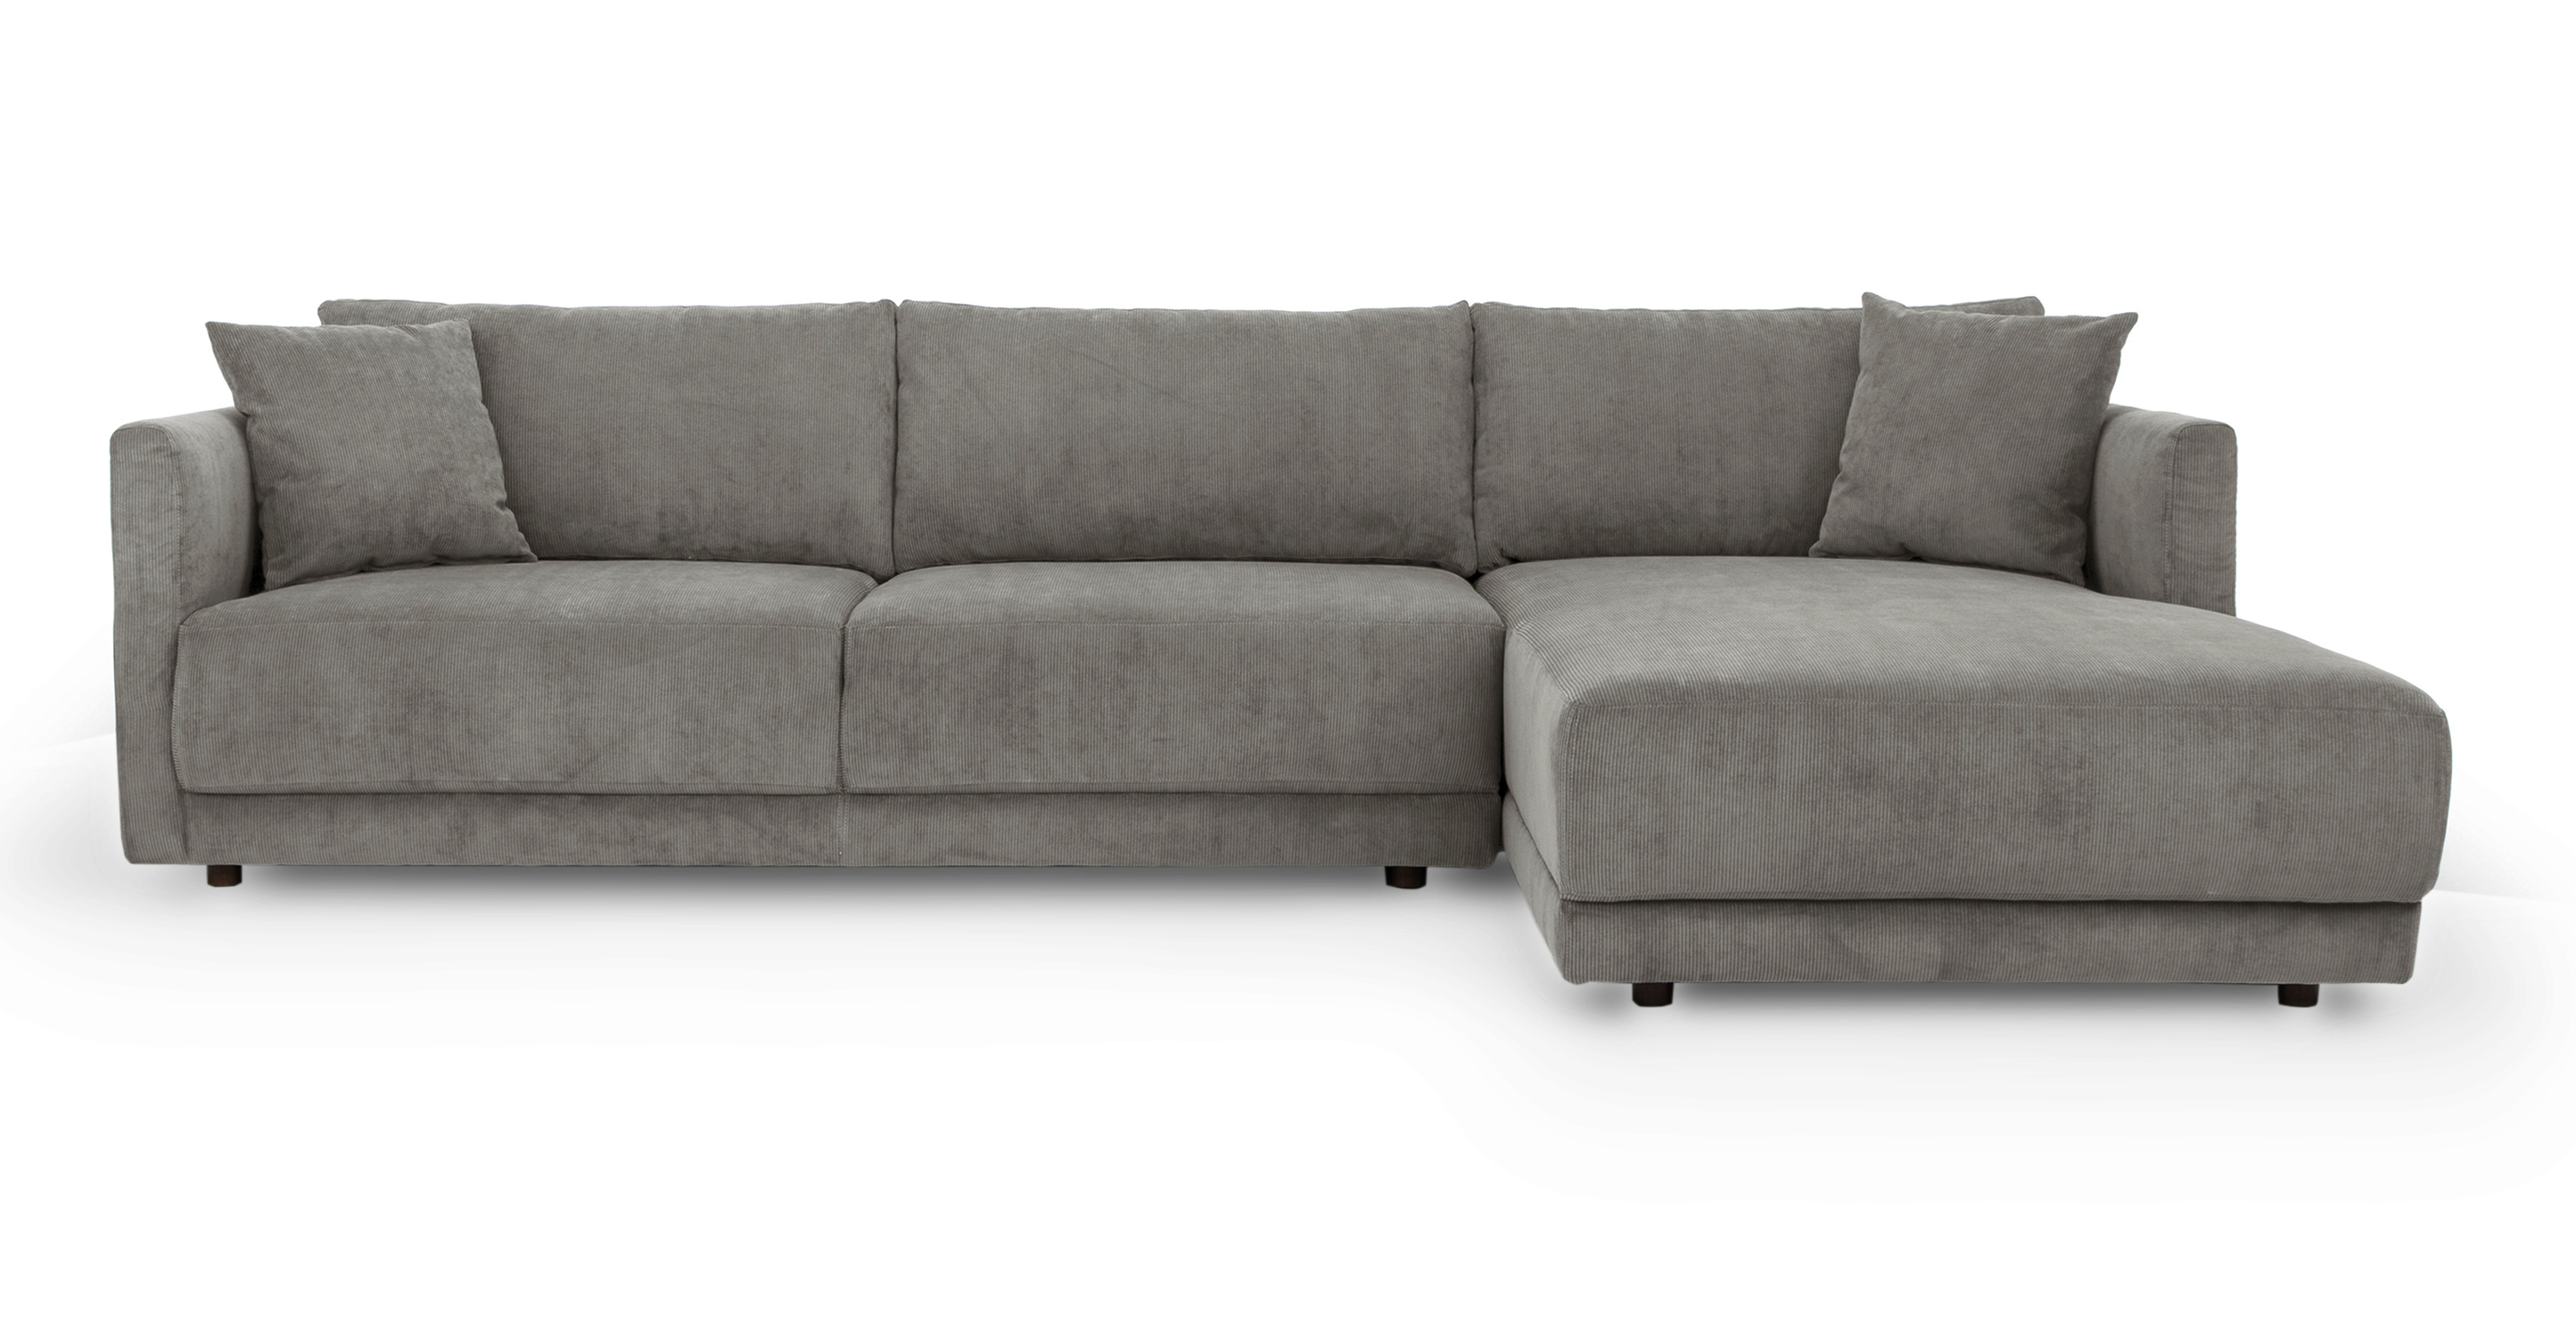 "Domus 115"" Fabric Sofa Sectional Right, Monorail Cord"